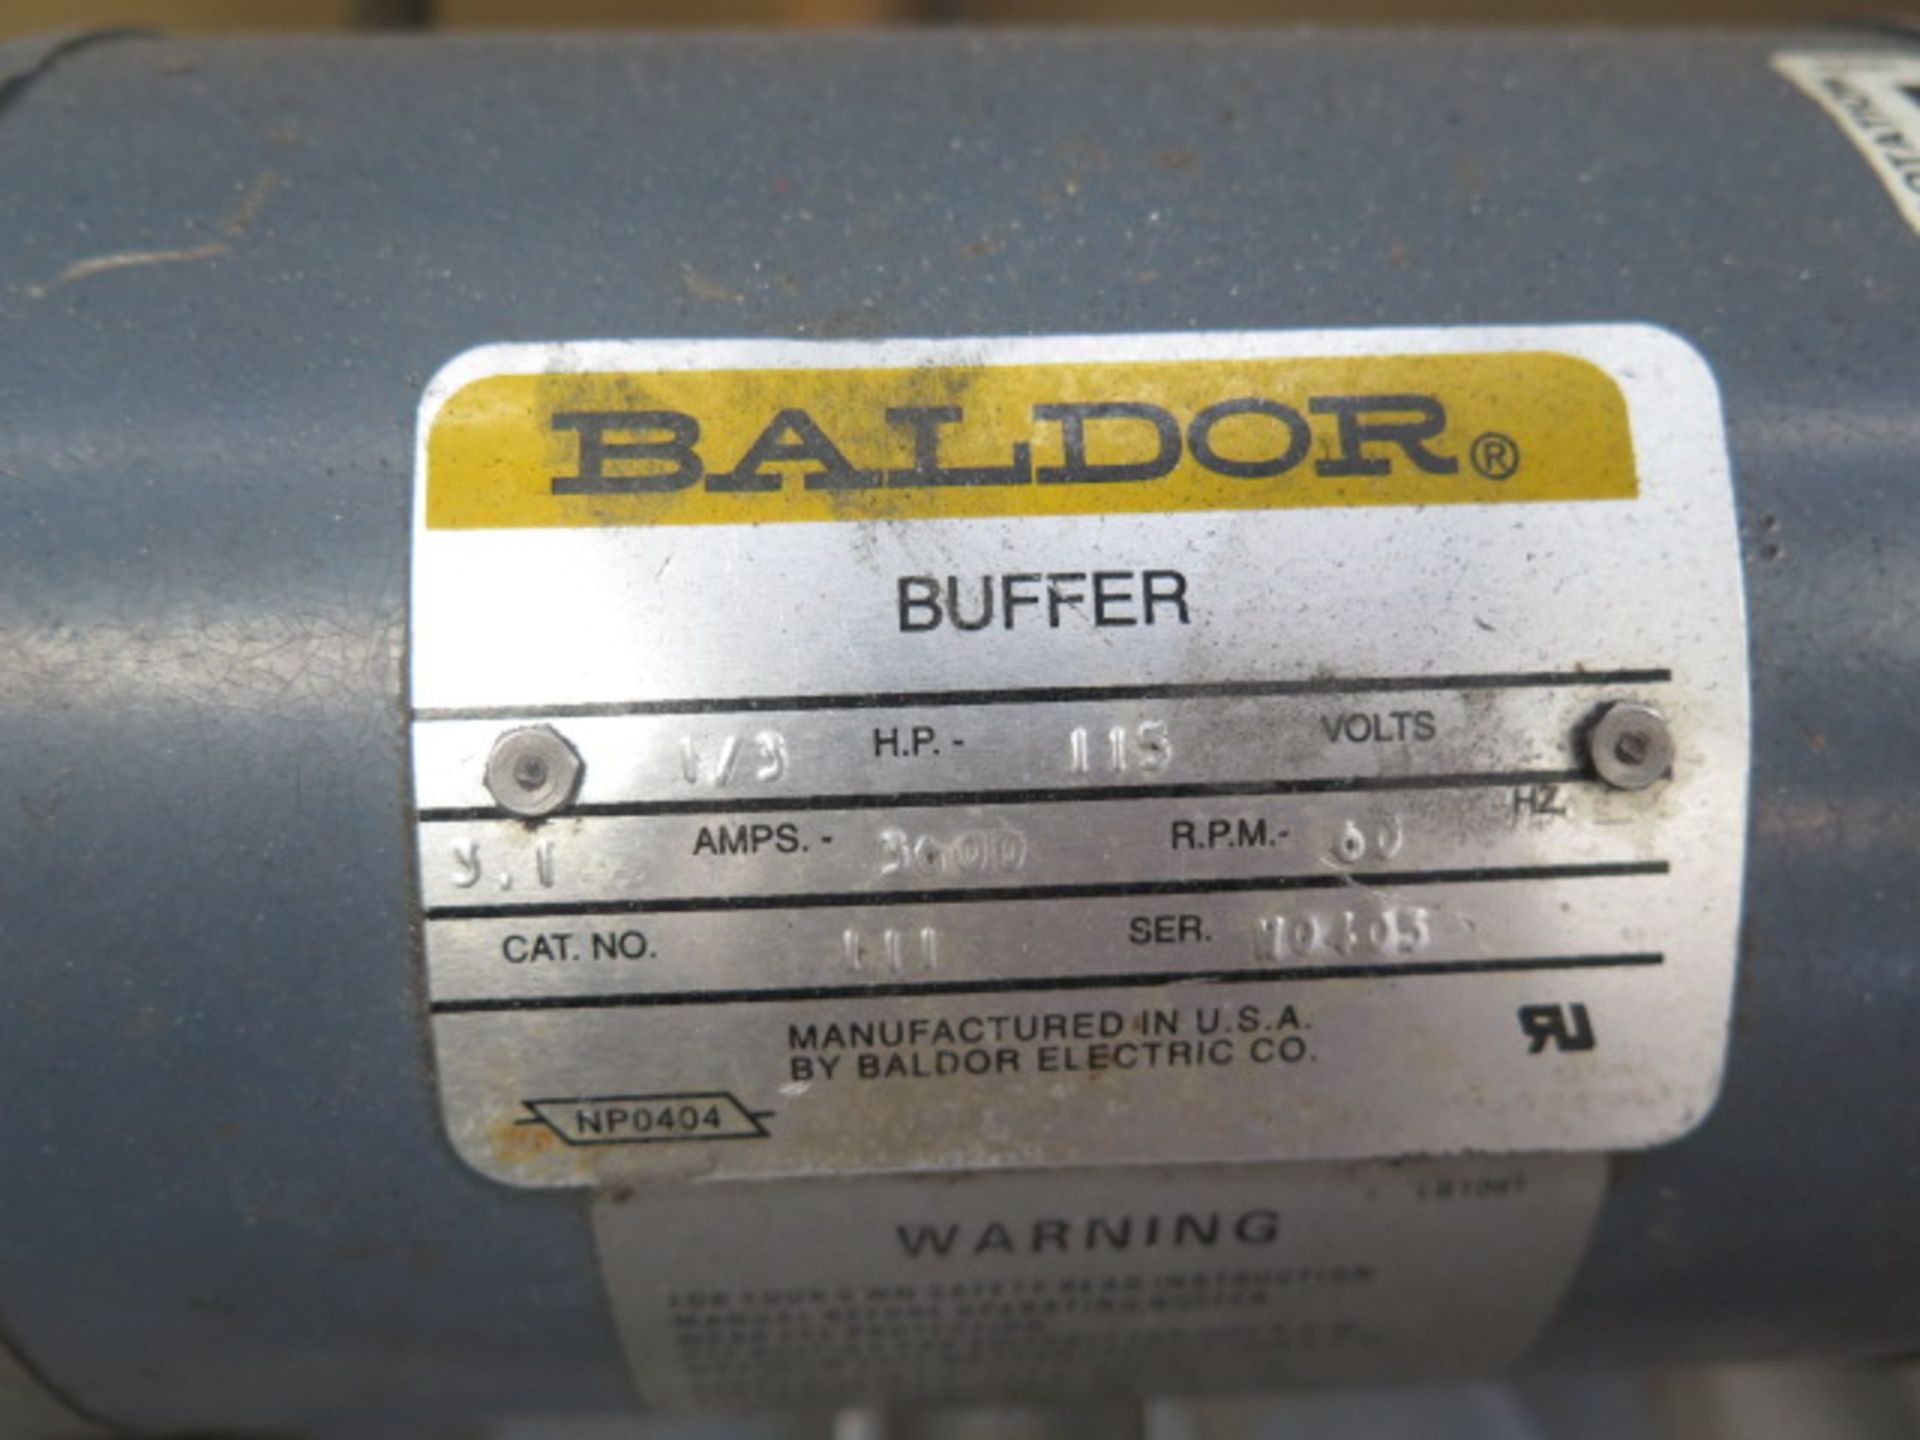 Baldor Bench Buffer (SOLD AS-IS - NO WARRANTY) - Image 2 of 4